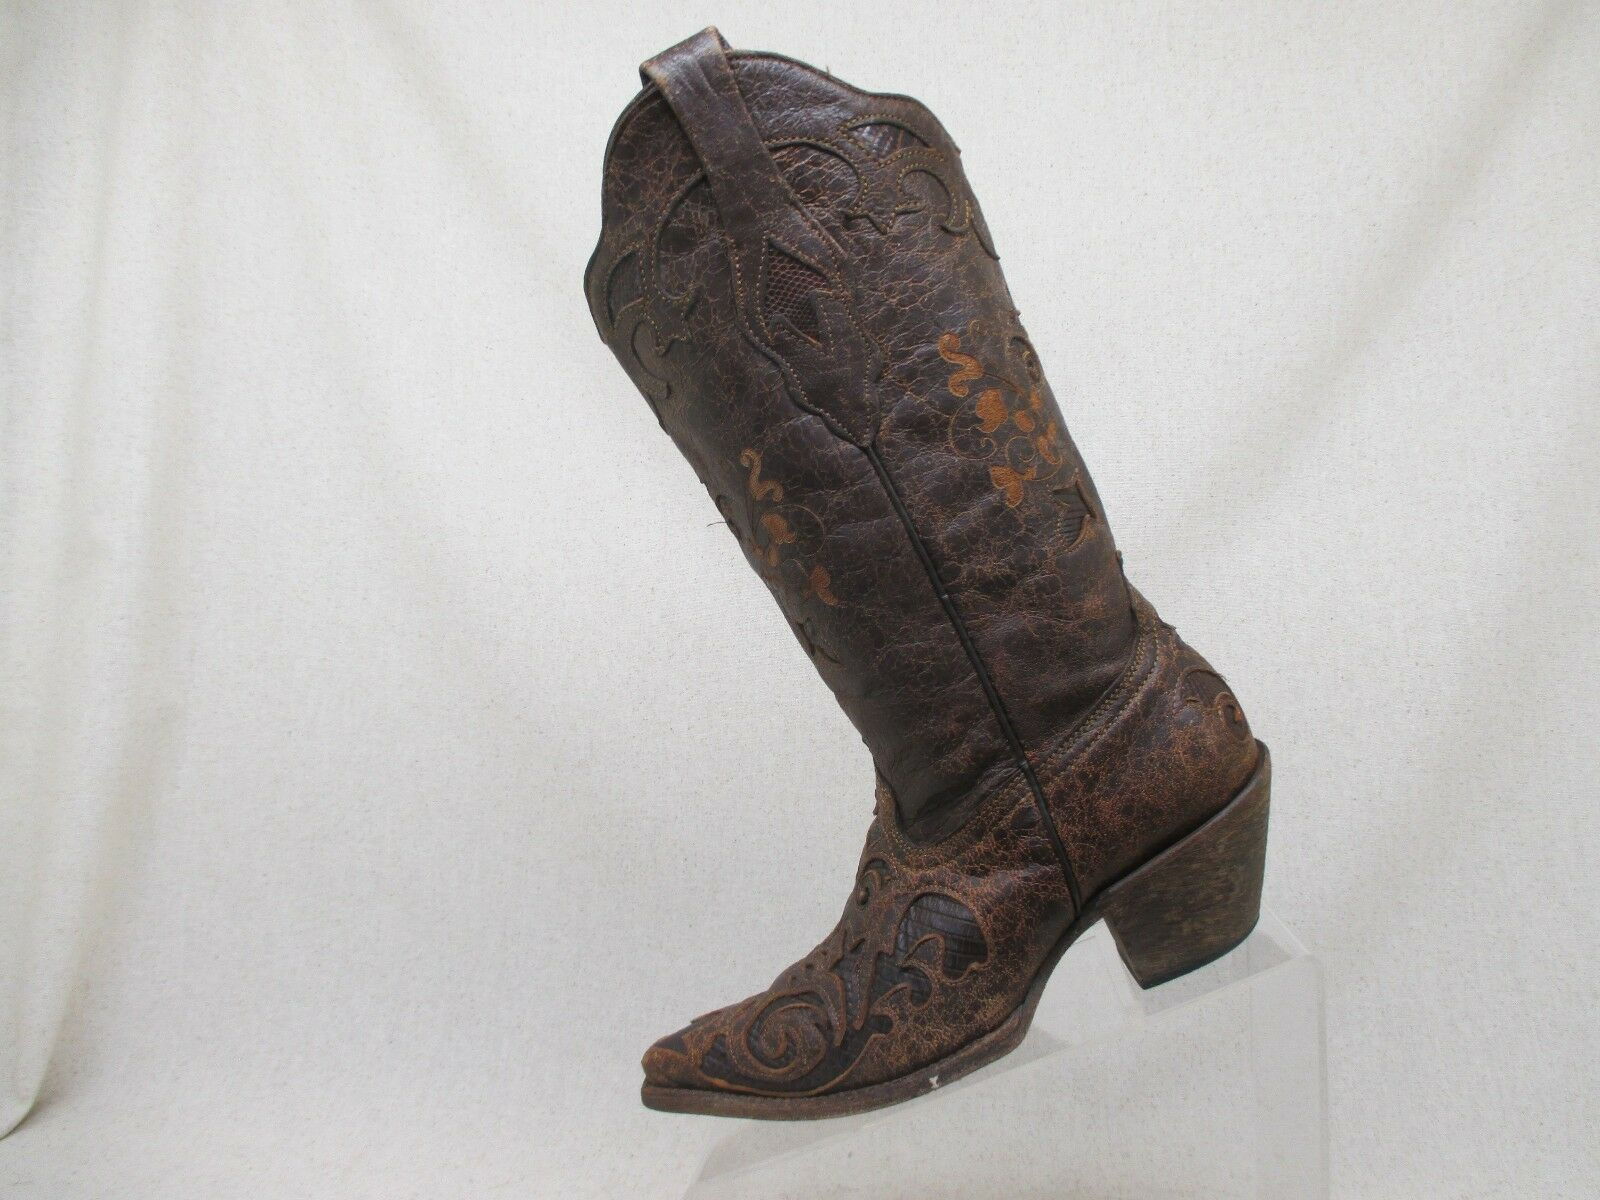 Corral Vintage Distressed Brown Leather Lizard Skin Inlay Cowboy Boots Size 6 M